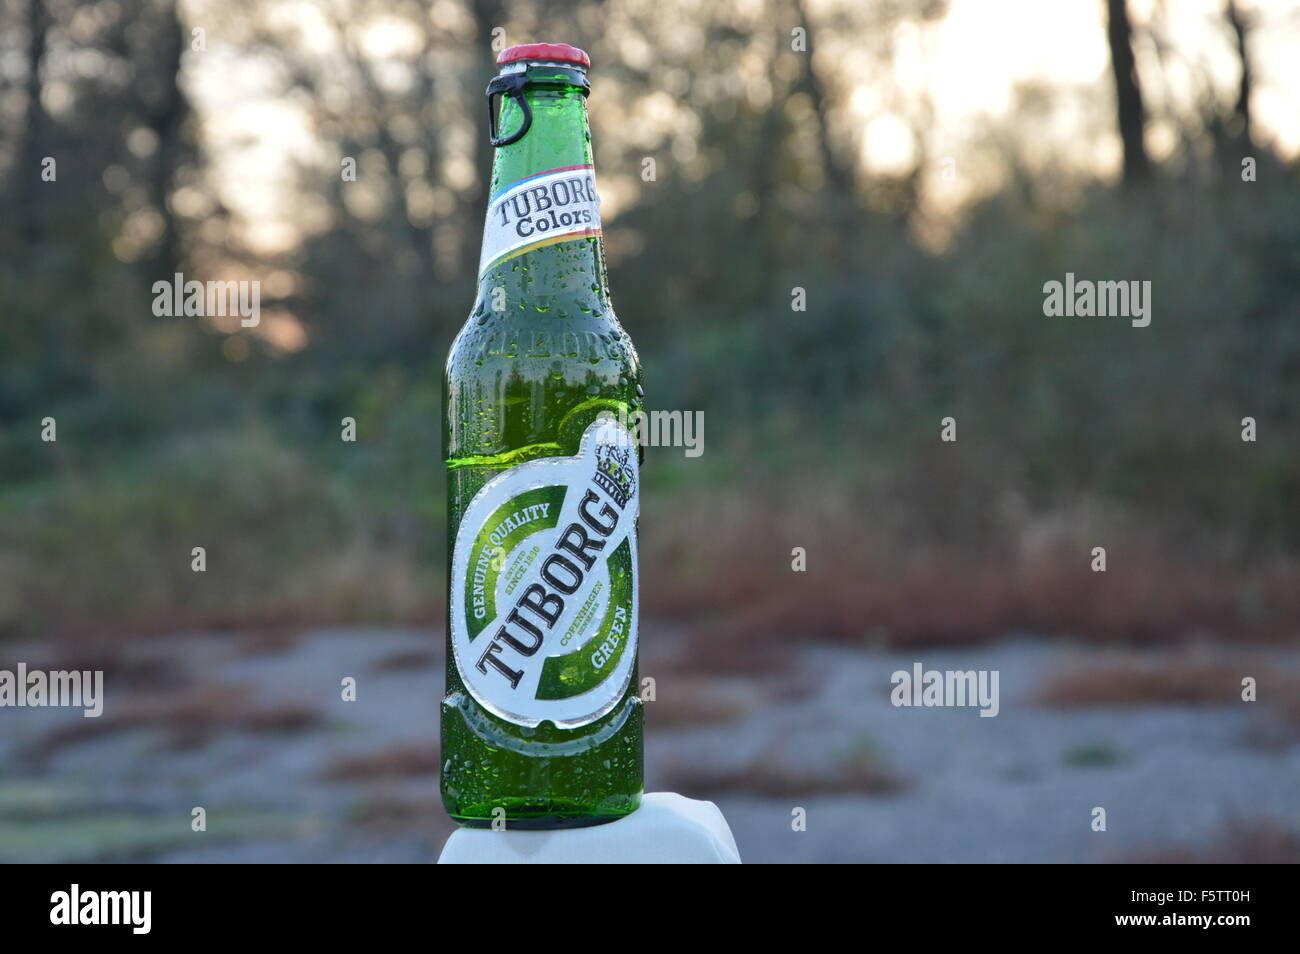 Tuborg Beer Stock Photos Tuborg Beer Stock Images Alamy